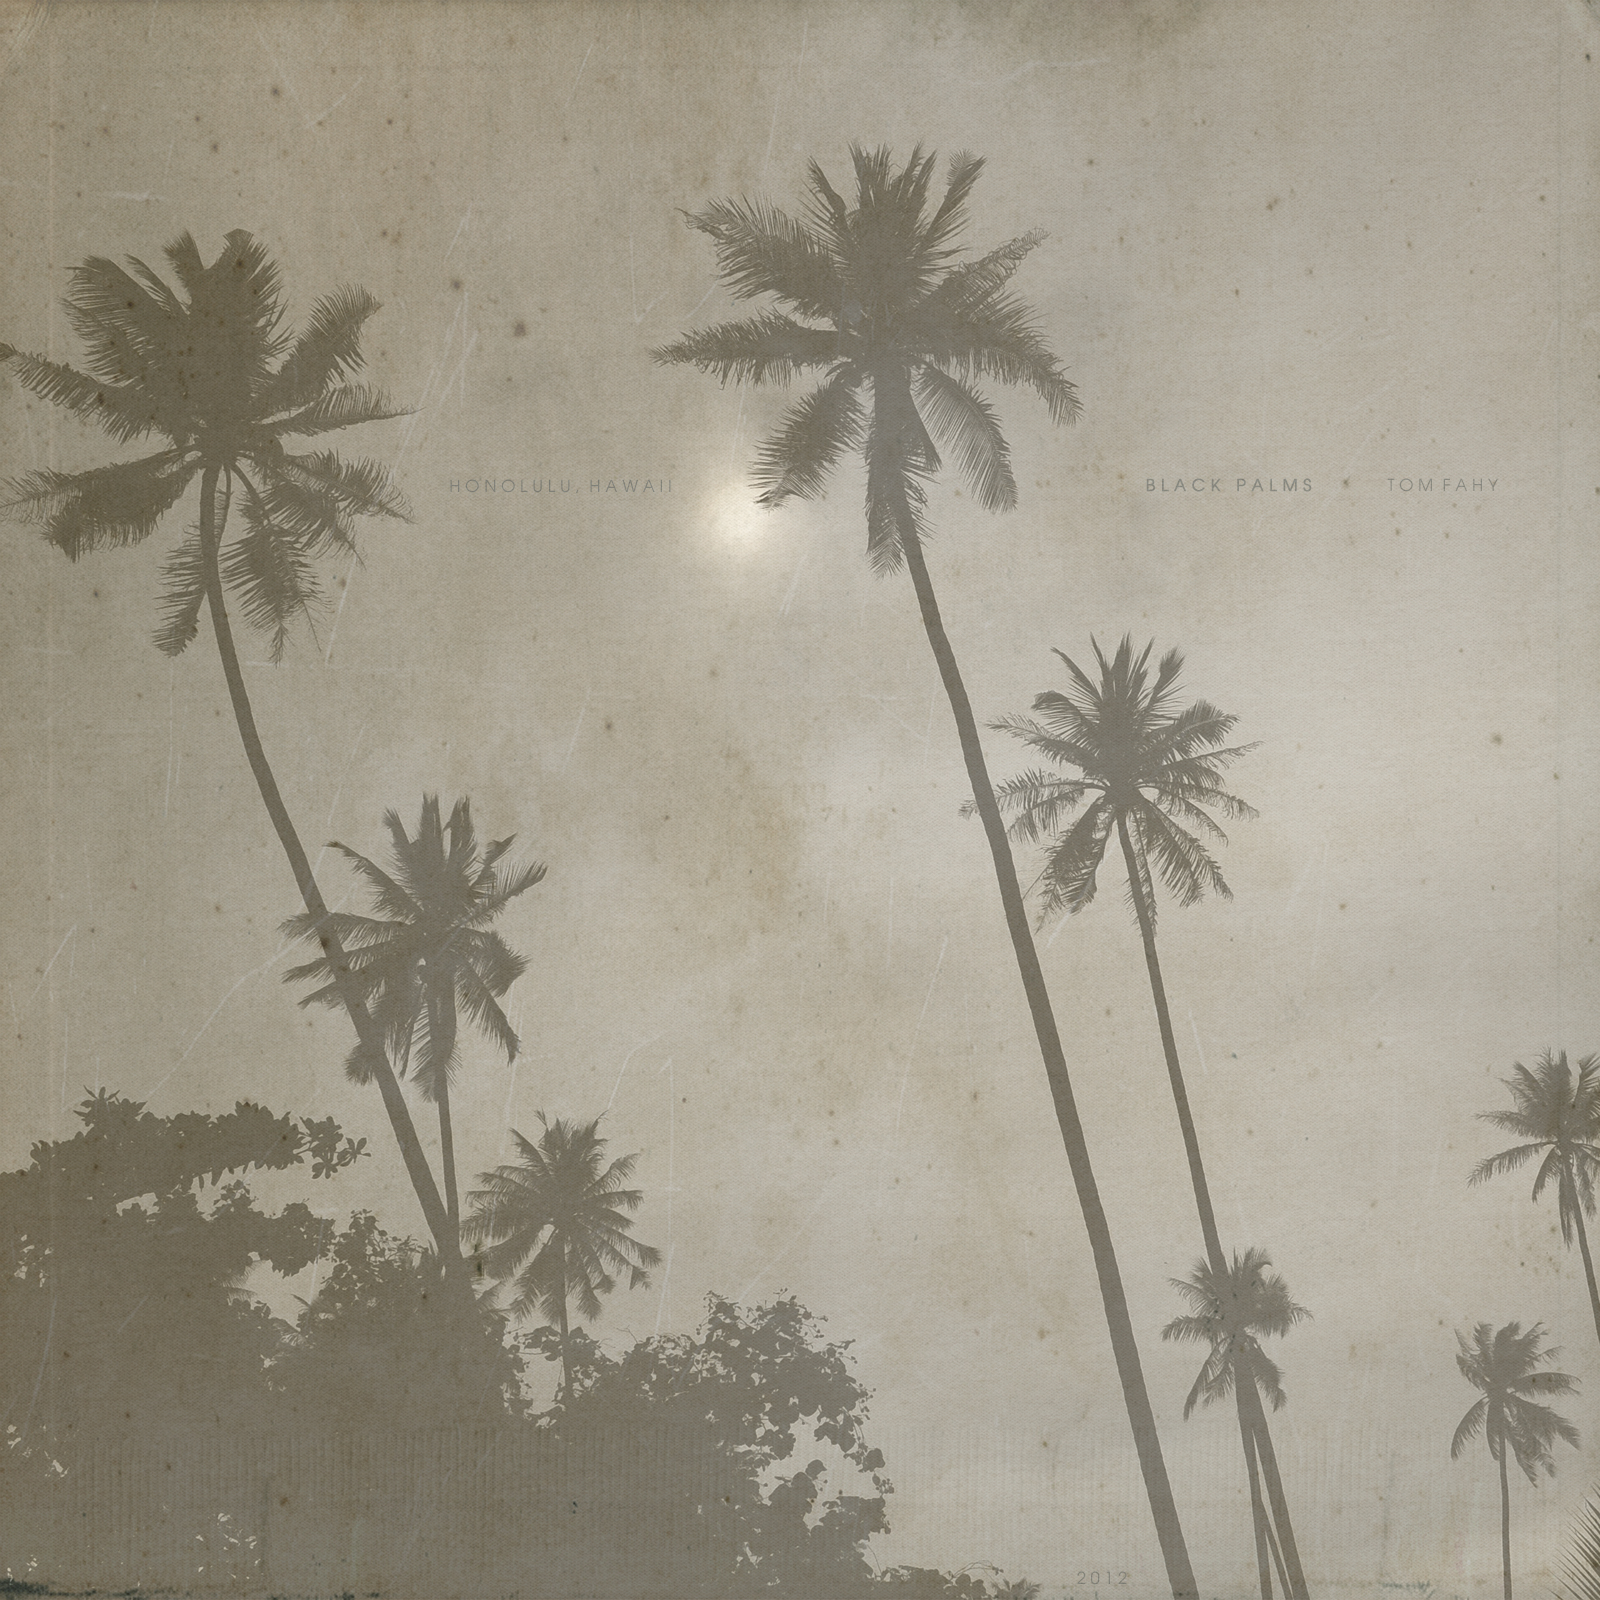 Black Palms by Tom Fahy